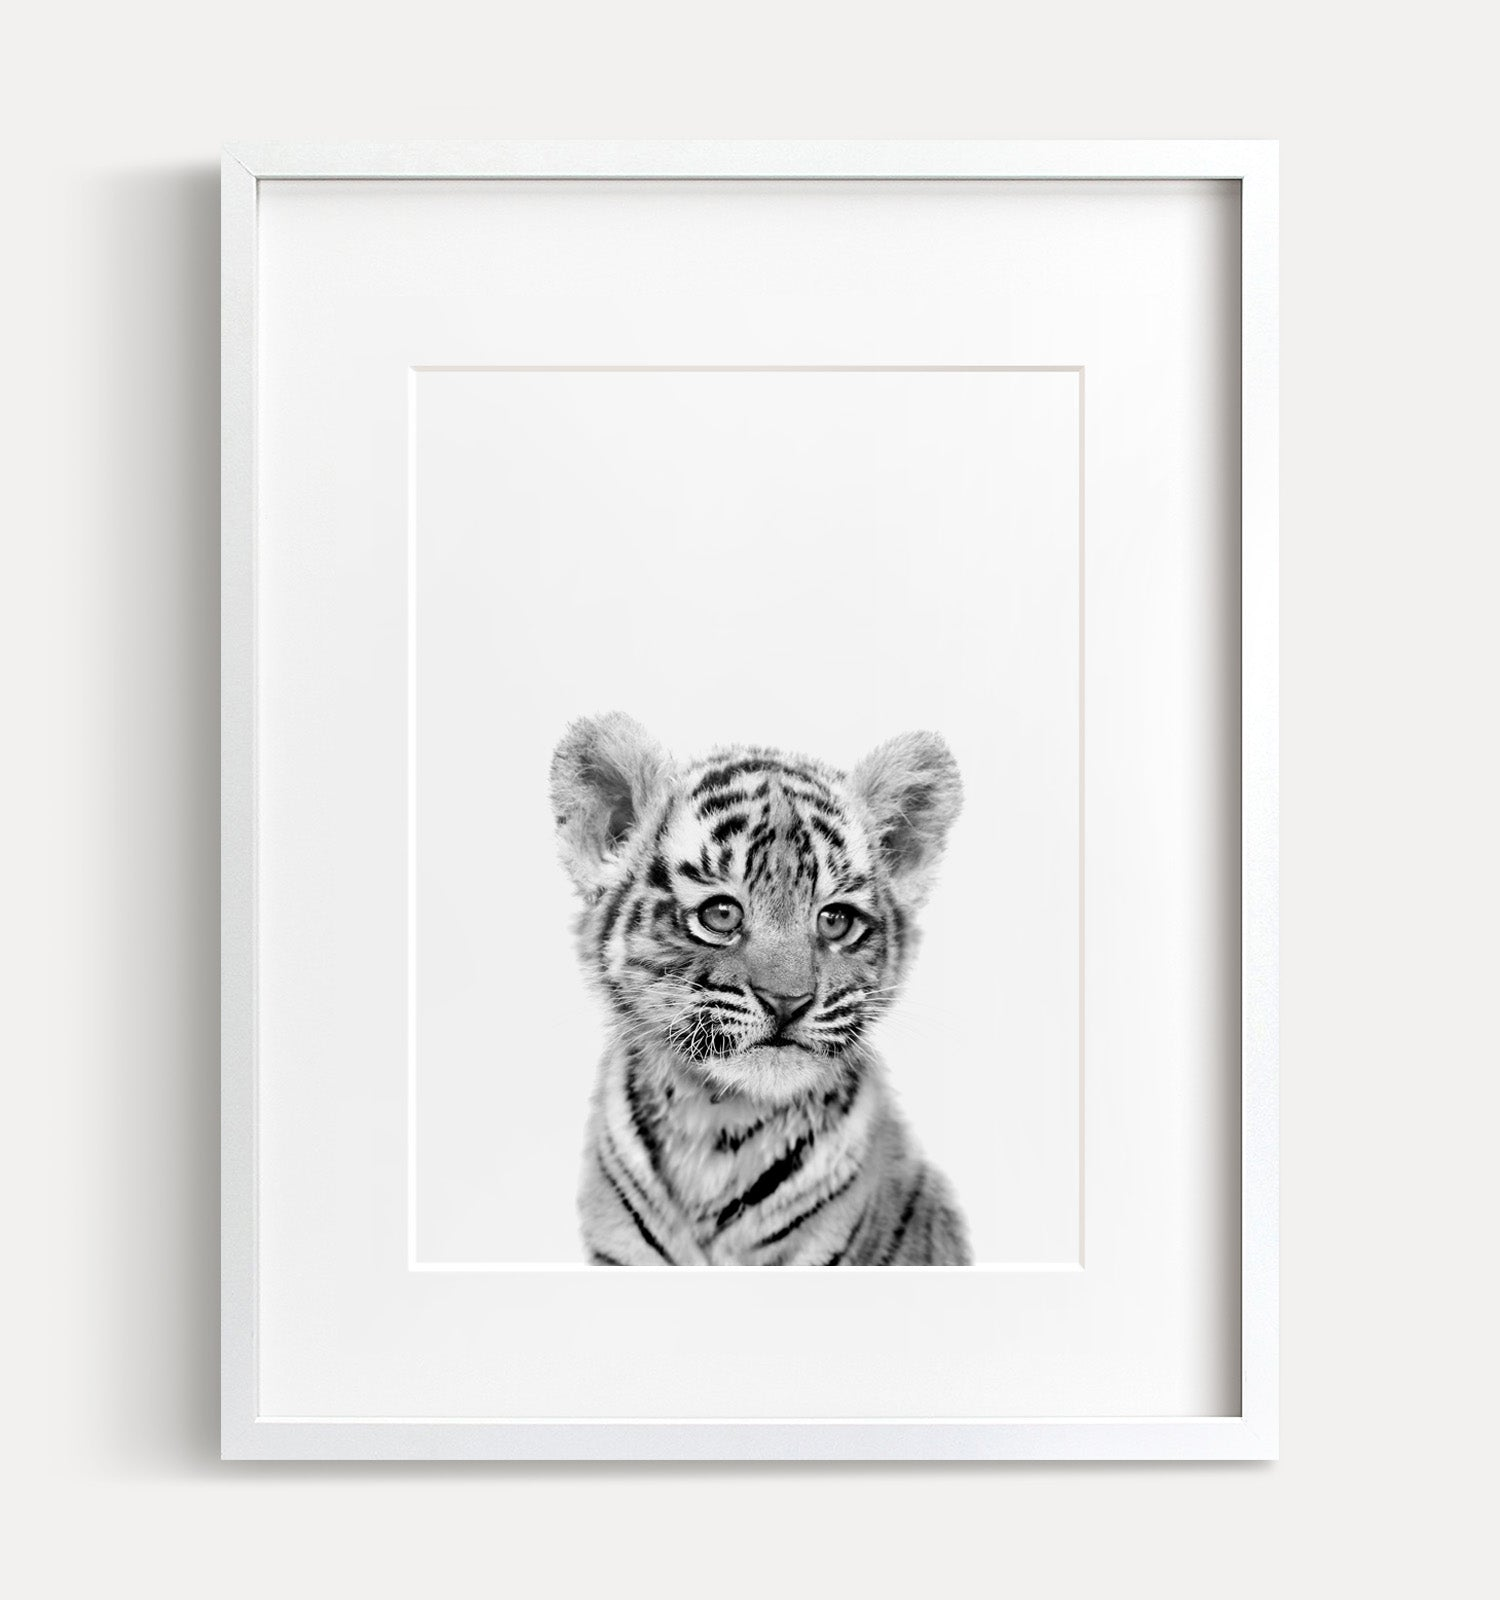 Baby Tiger Printable Art No. 2 - Black and White